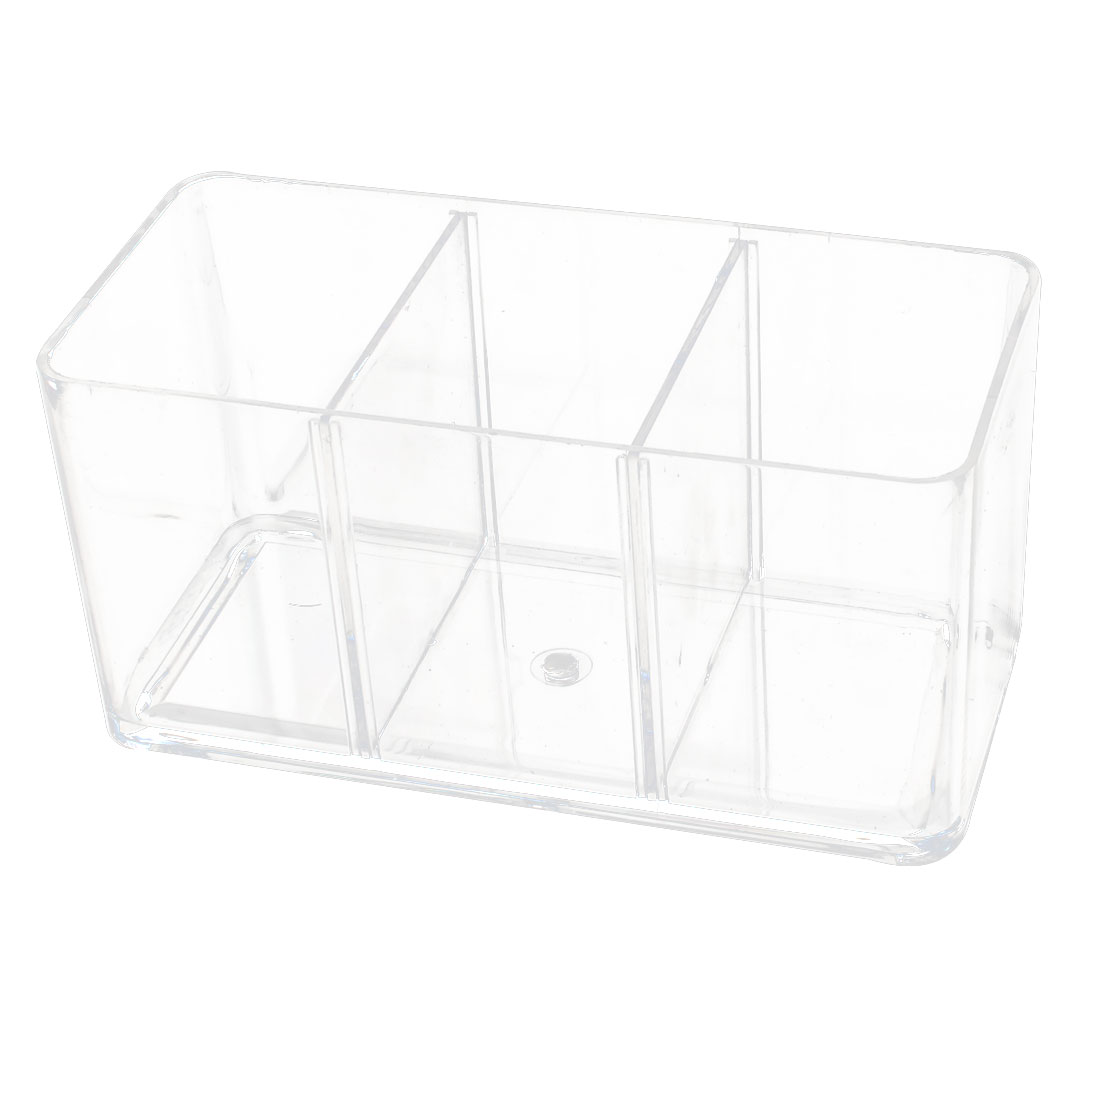 Clear Plastic 17 x 8.5 x 8cm Rectangle Shaped Betta Fish Tank Aquarium